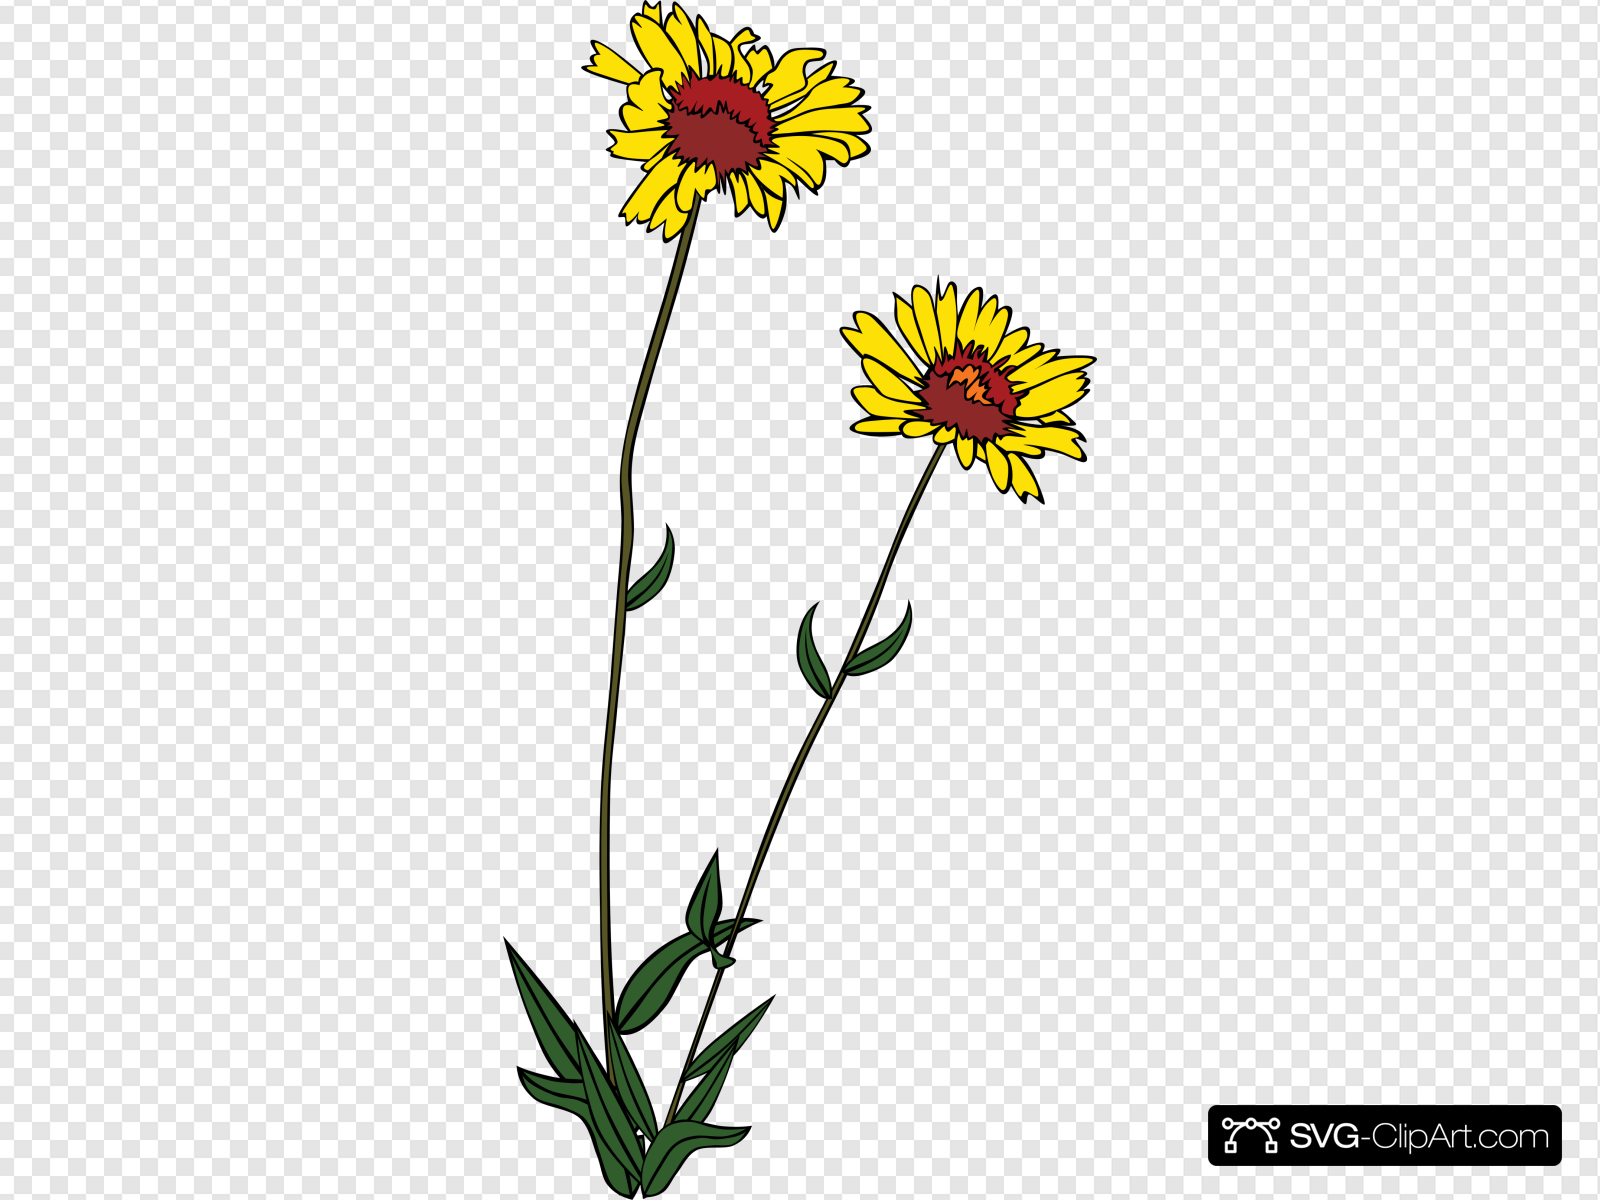 Yellow Wild Flower Clip art, Icon and SVG.